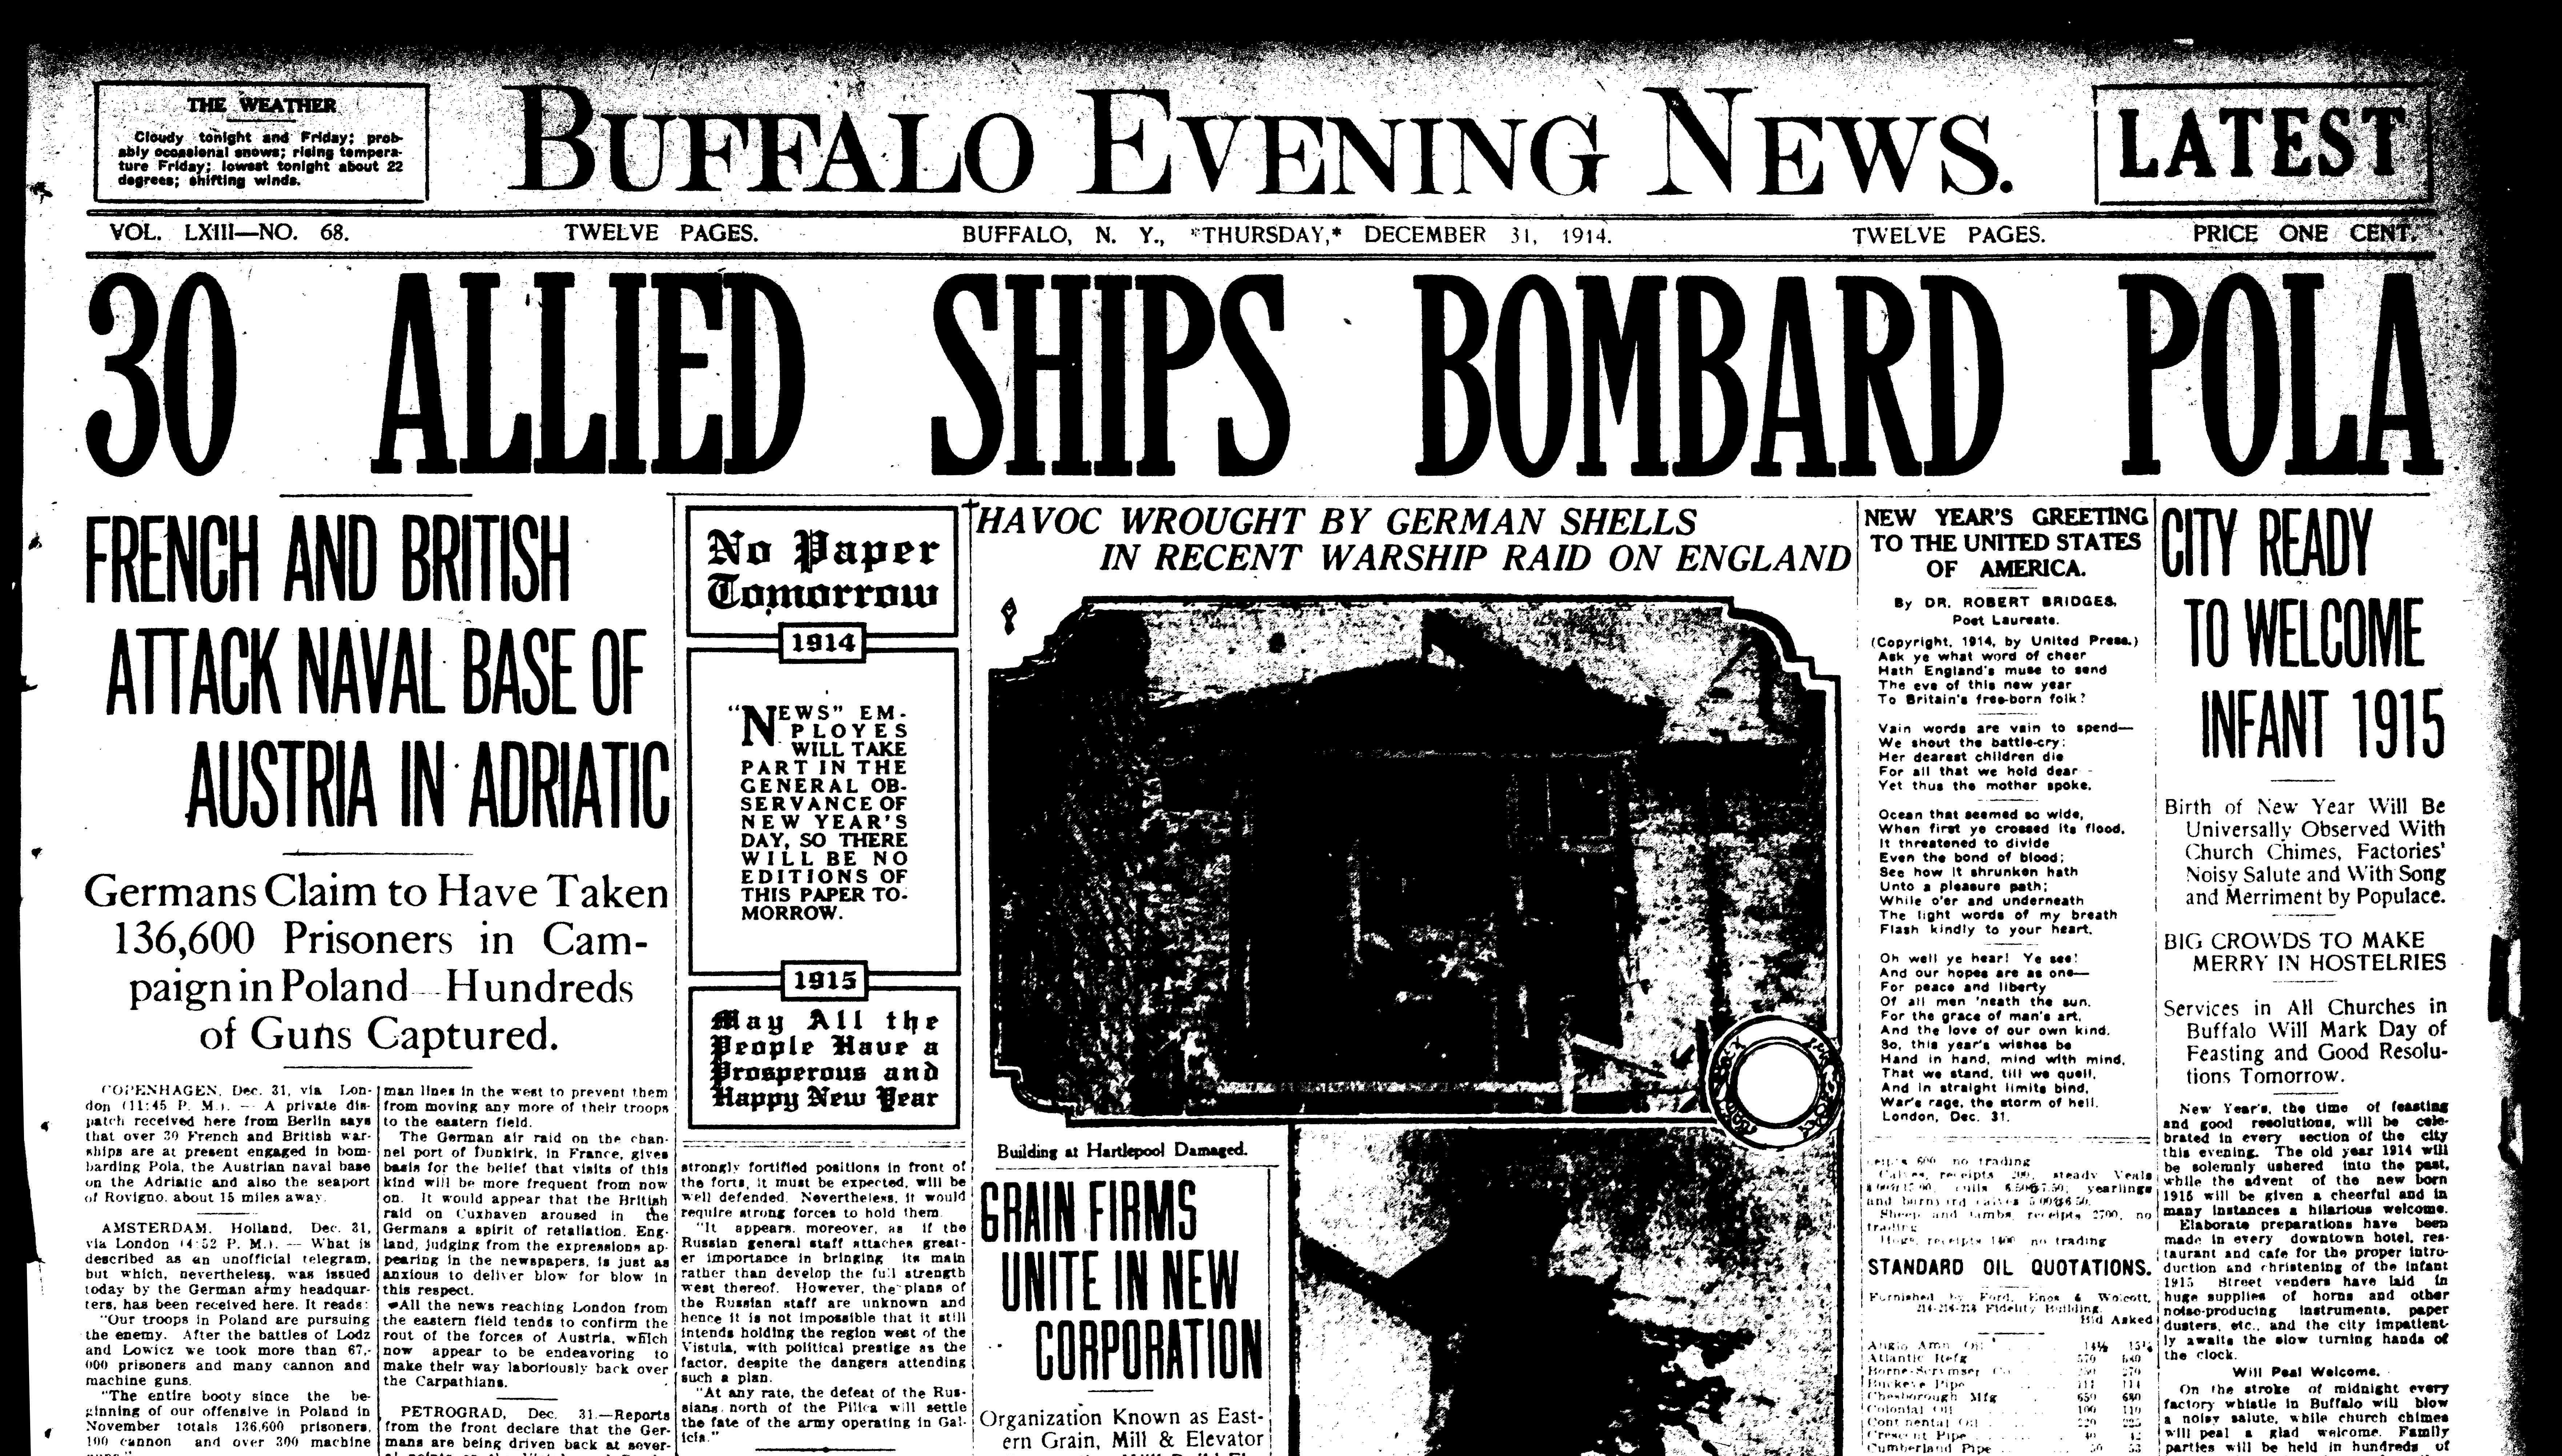 Dec. 31, 1914: A look back at the news 100 years ago